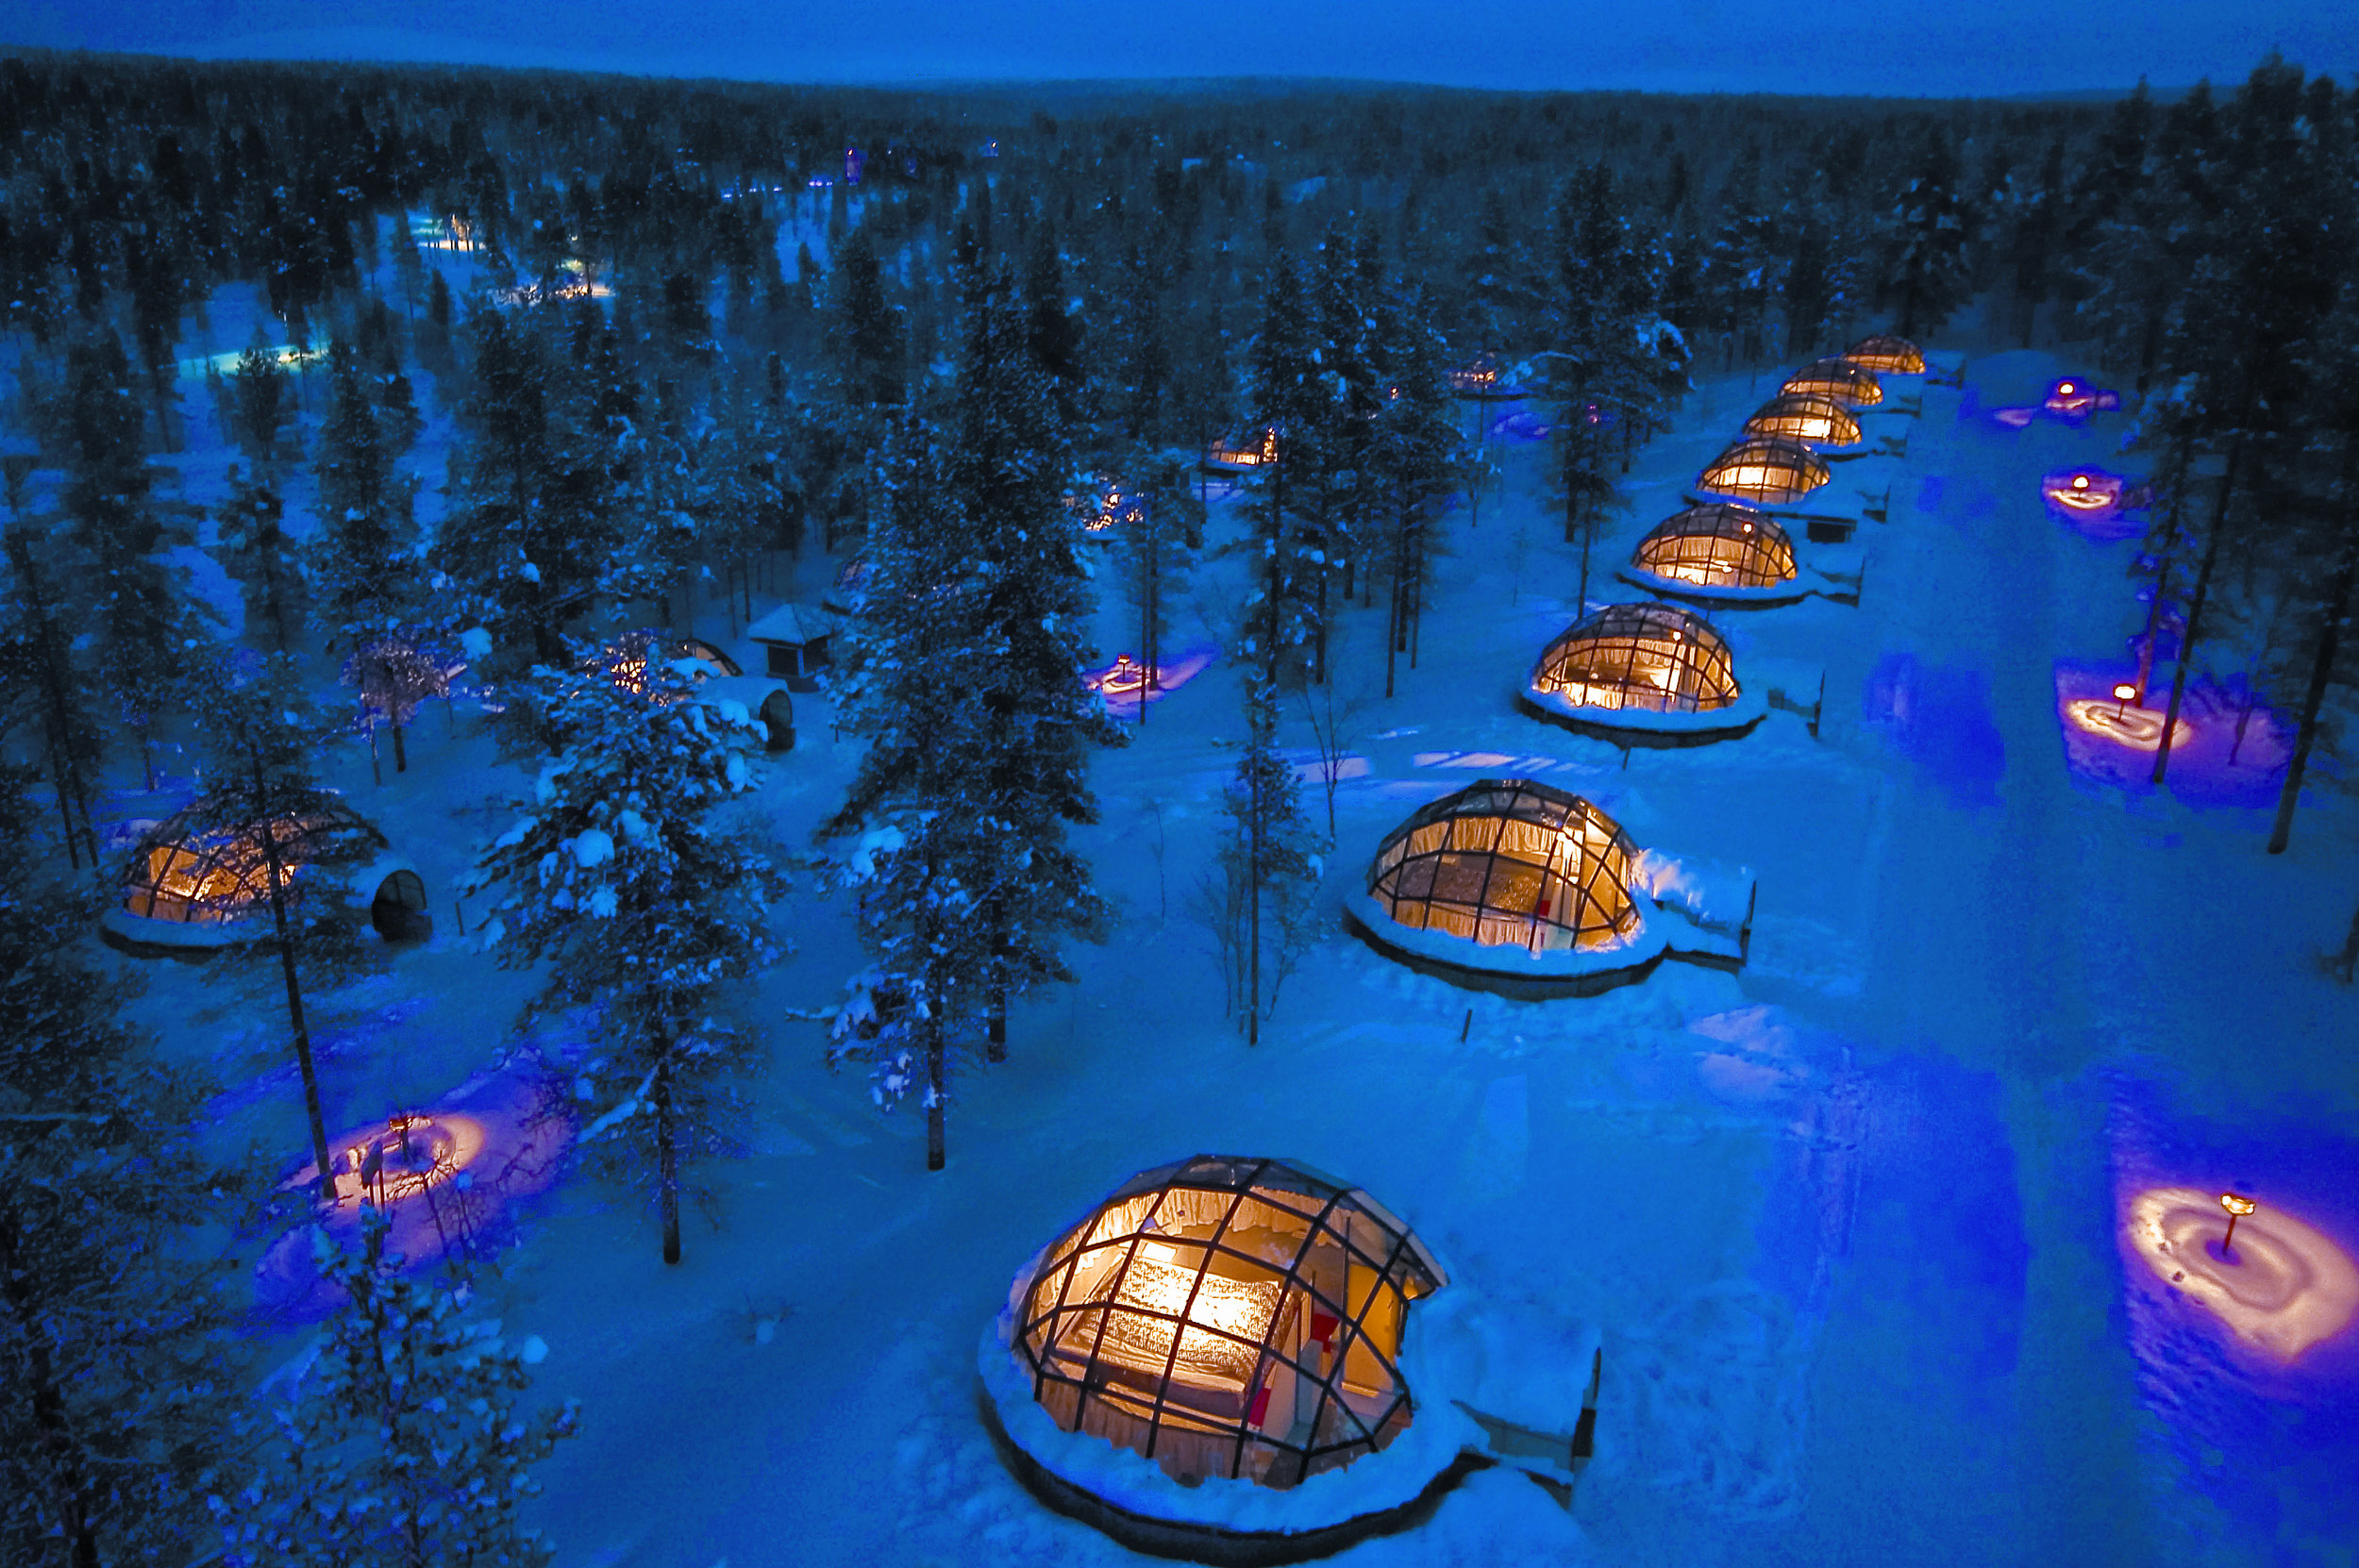 Aurora glass igloos - Make sure to check out our comprehensive list of all the aurora glass cabins in Finland here